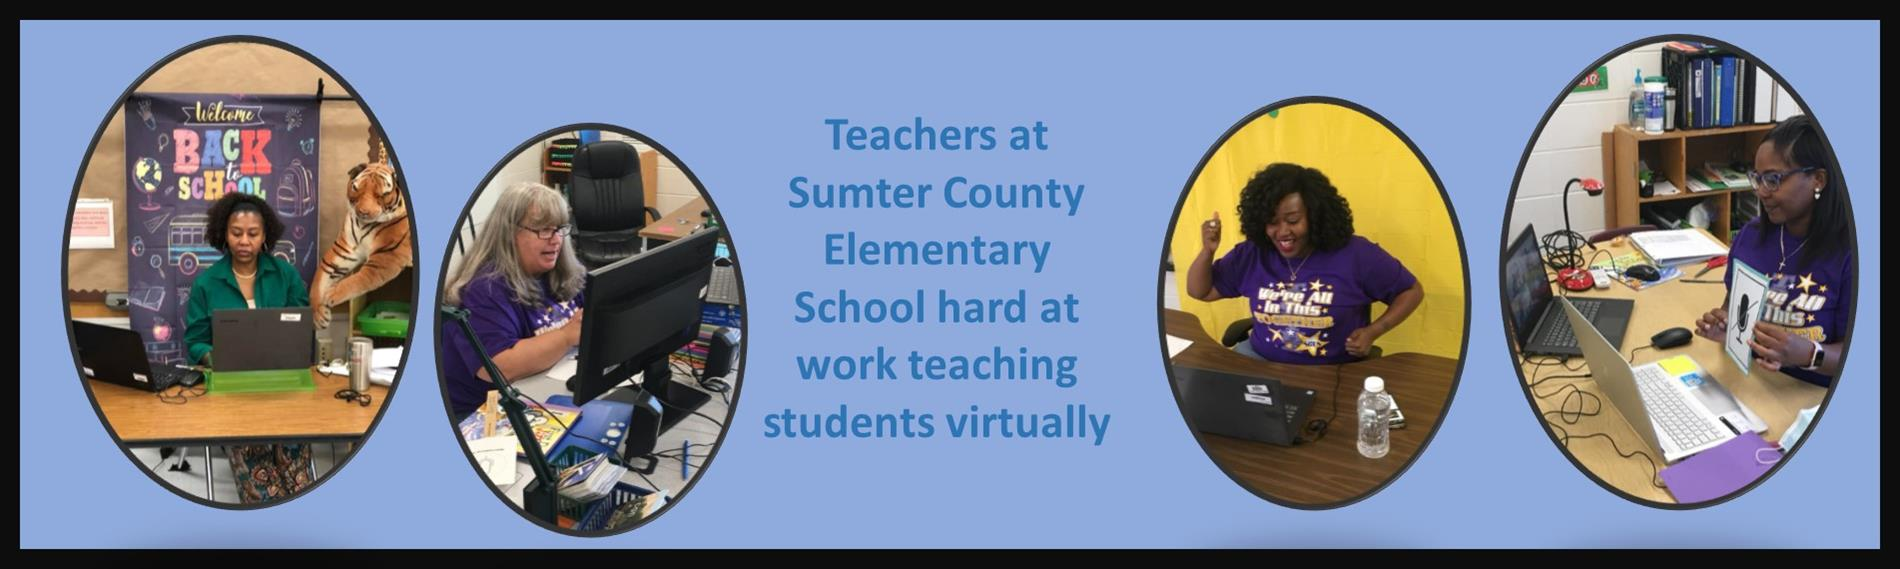 Teachers at Sumter County Elementary School hard at work teaching 2nd and 3rd graders virtually